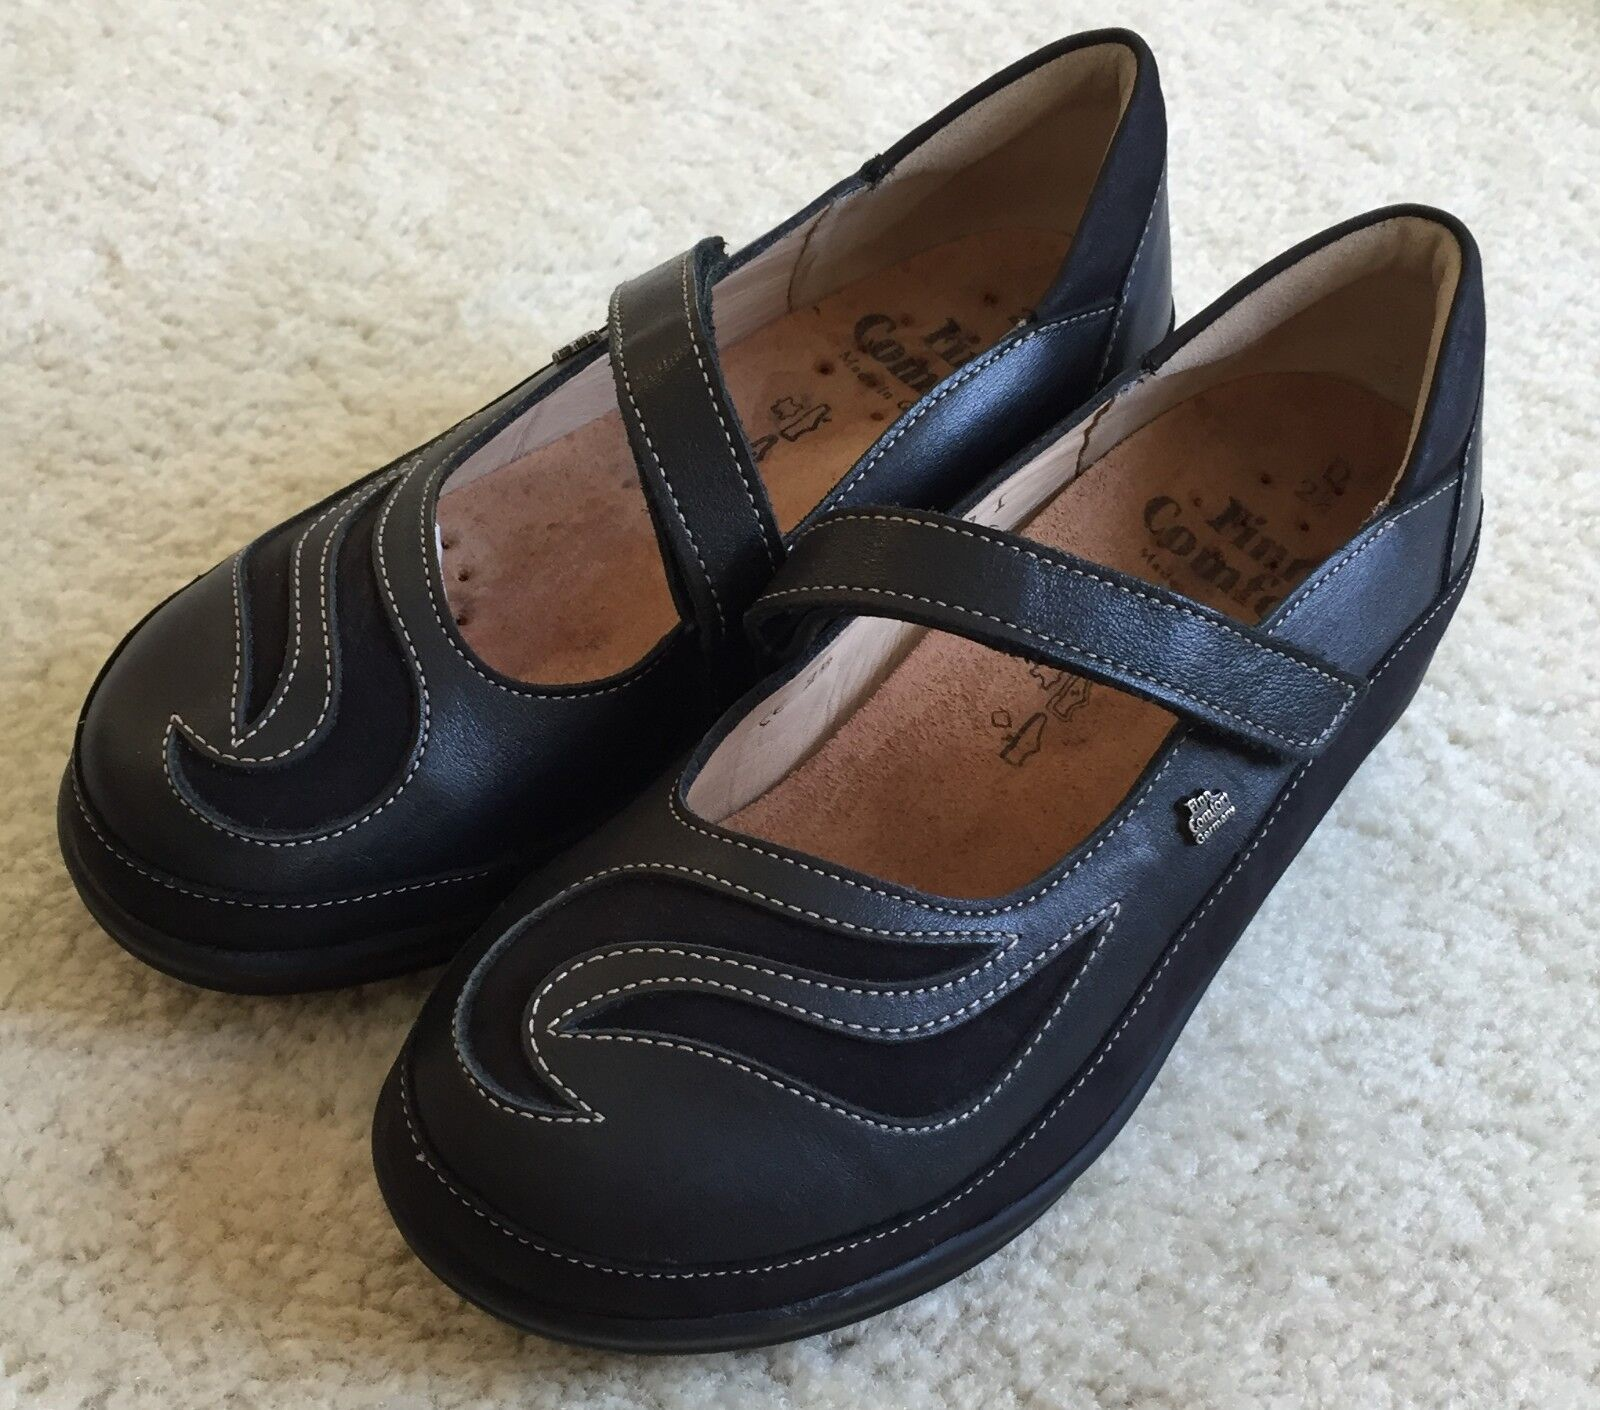 Women's Finn Comfort Black Glendale Leather Leather Leather Mary Jane shoes Flats 2.5   4.5 M 0c1b01